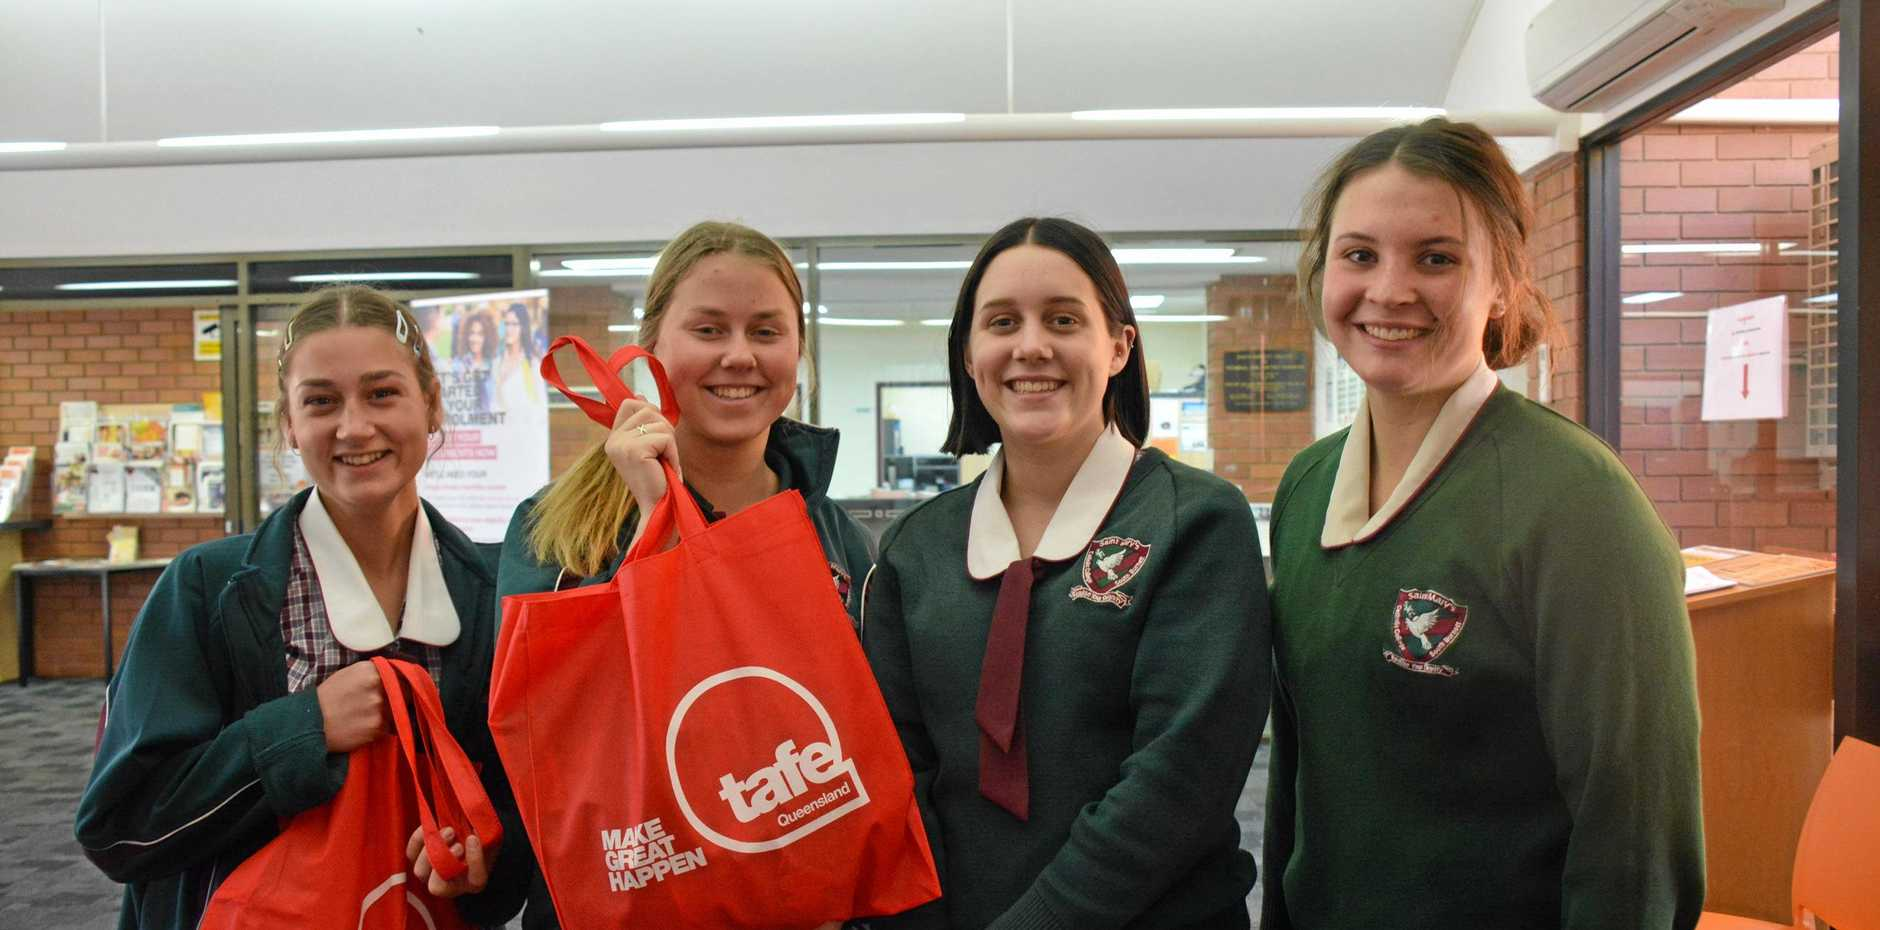 Maddy Askin, Kate Batts, Lana Sowden, and Jamie Atkins from St Mary's explore their study and career options at the South Burnett Careers Market at the Kingaroy TAFE campus.